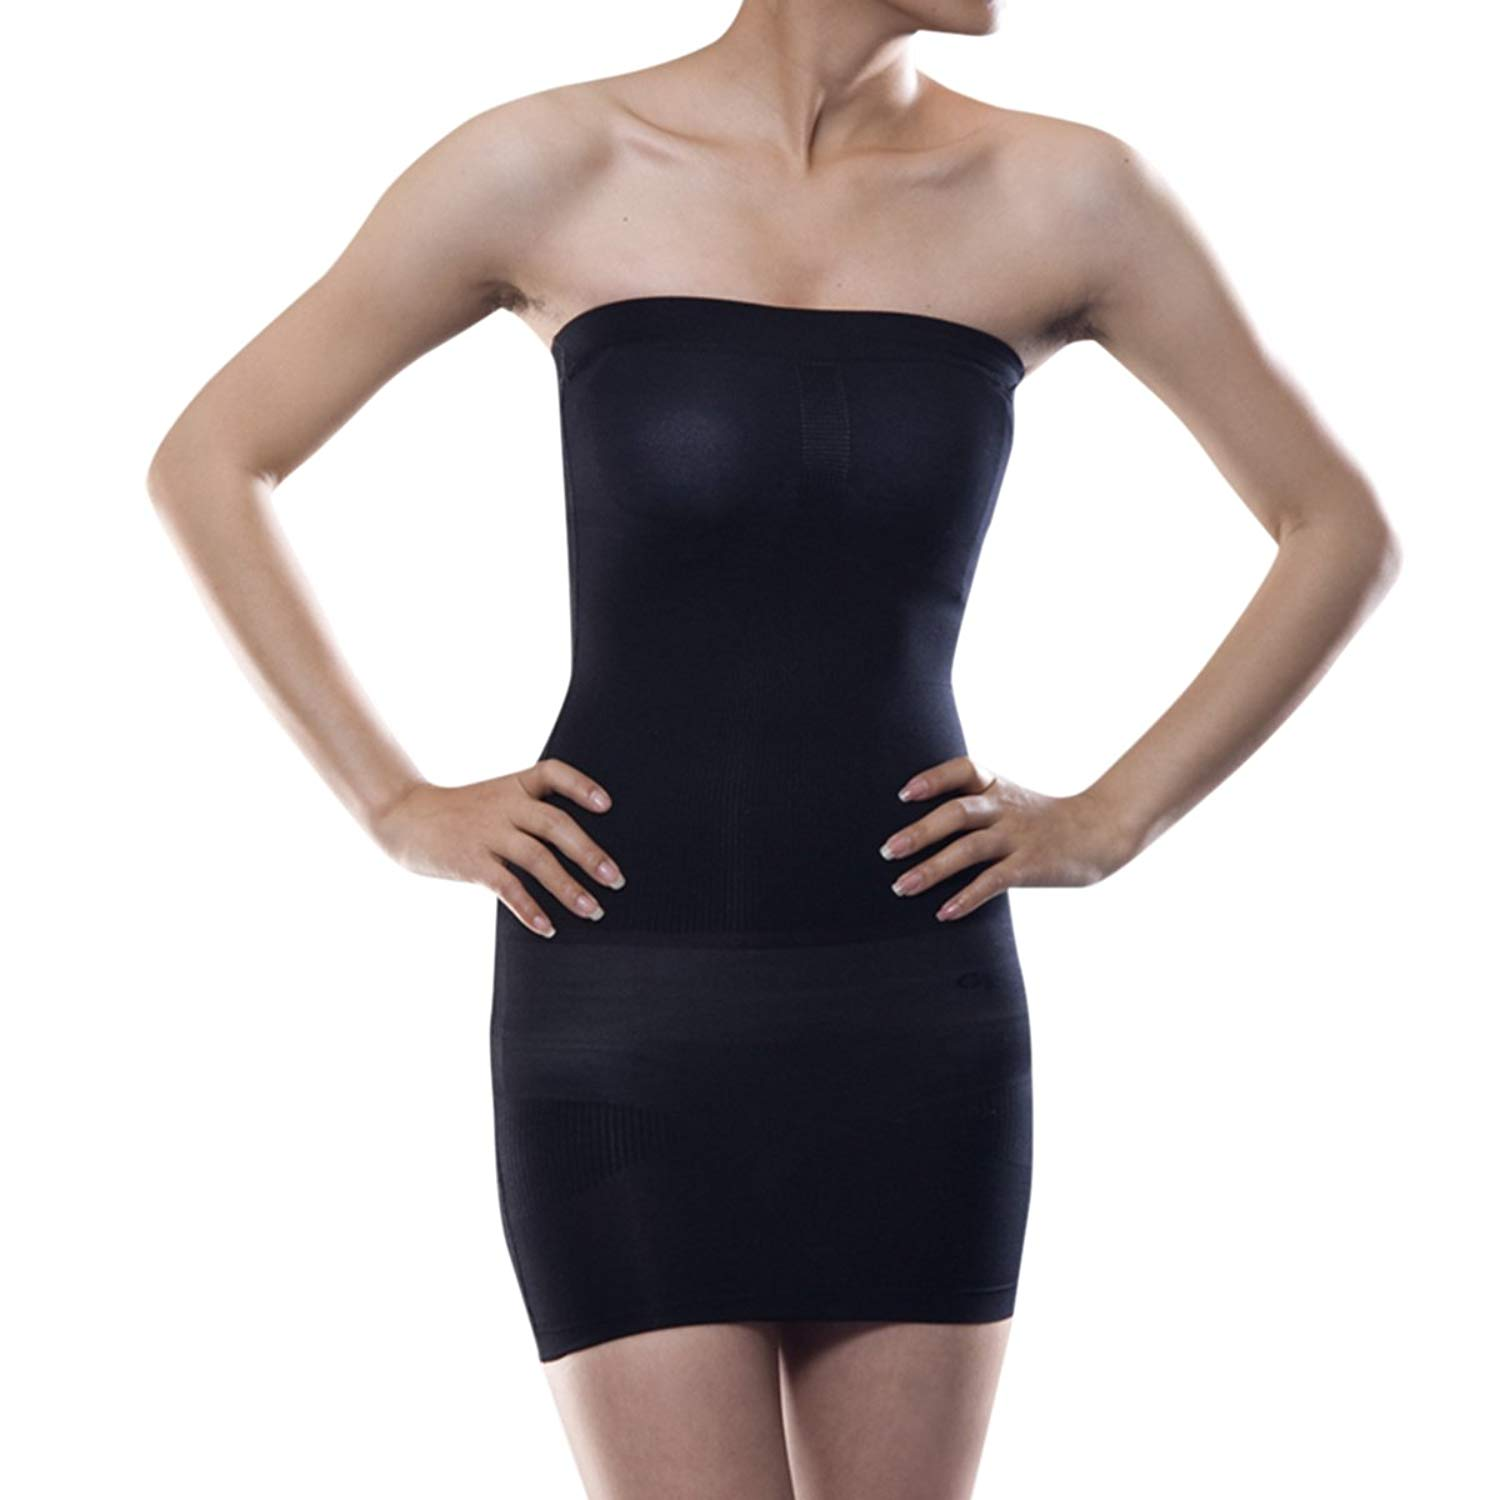 7cb82a8c0a941 Get Quotations · Shymay Women s Full Body Slip Seamless Strapless Shaping  Tube Shapewear Dress